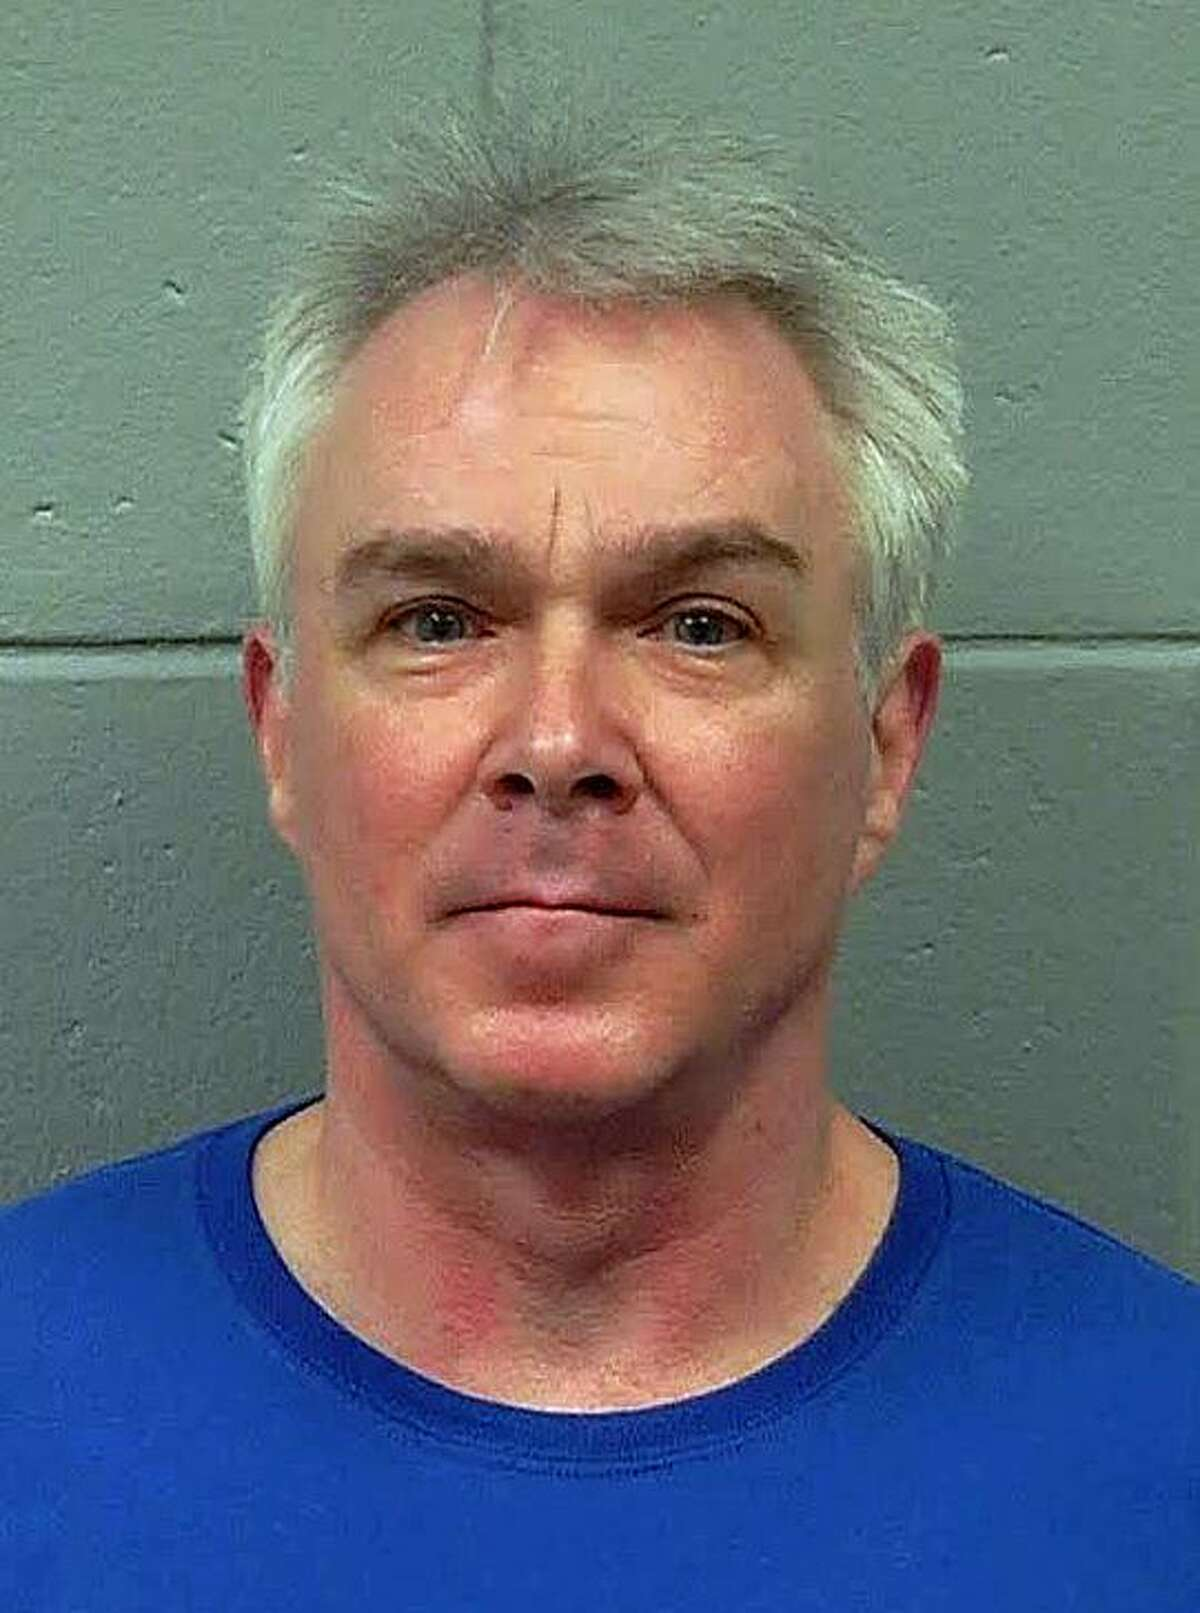 Marc Karun, 53, of Maine was taken into custody on a fugitive from justice warrant in connection with the murder of Kathleen Flynn on Sept. 23, 1986.